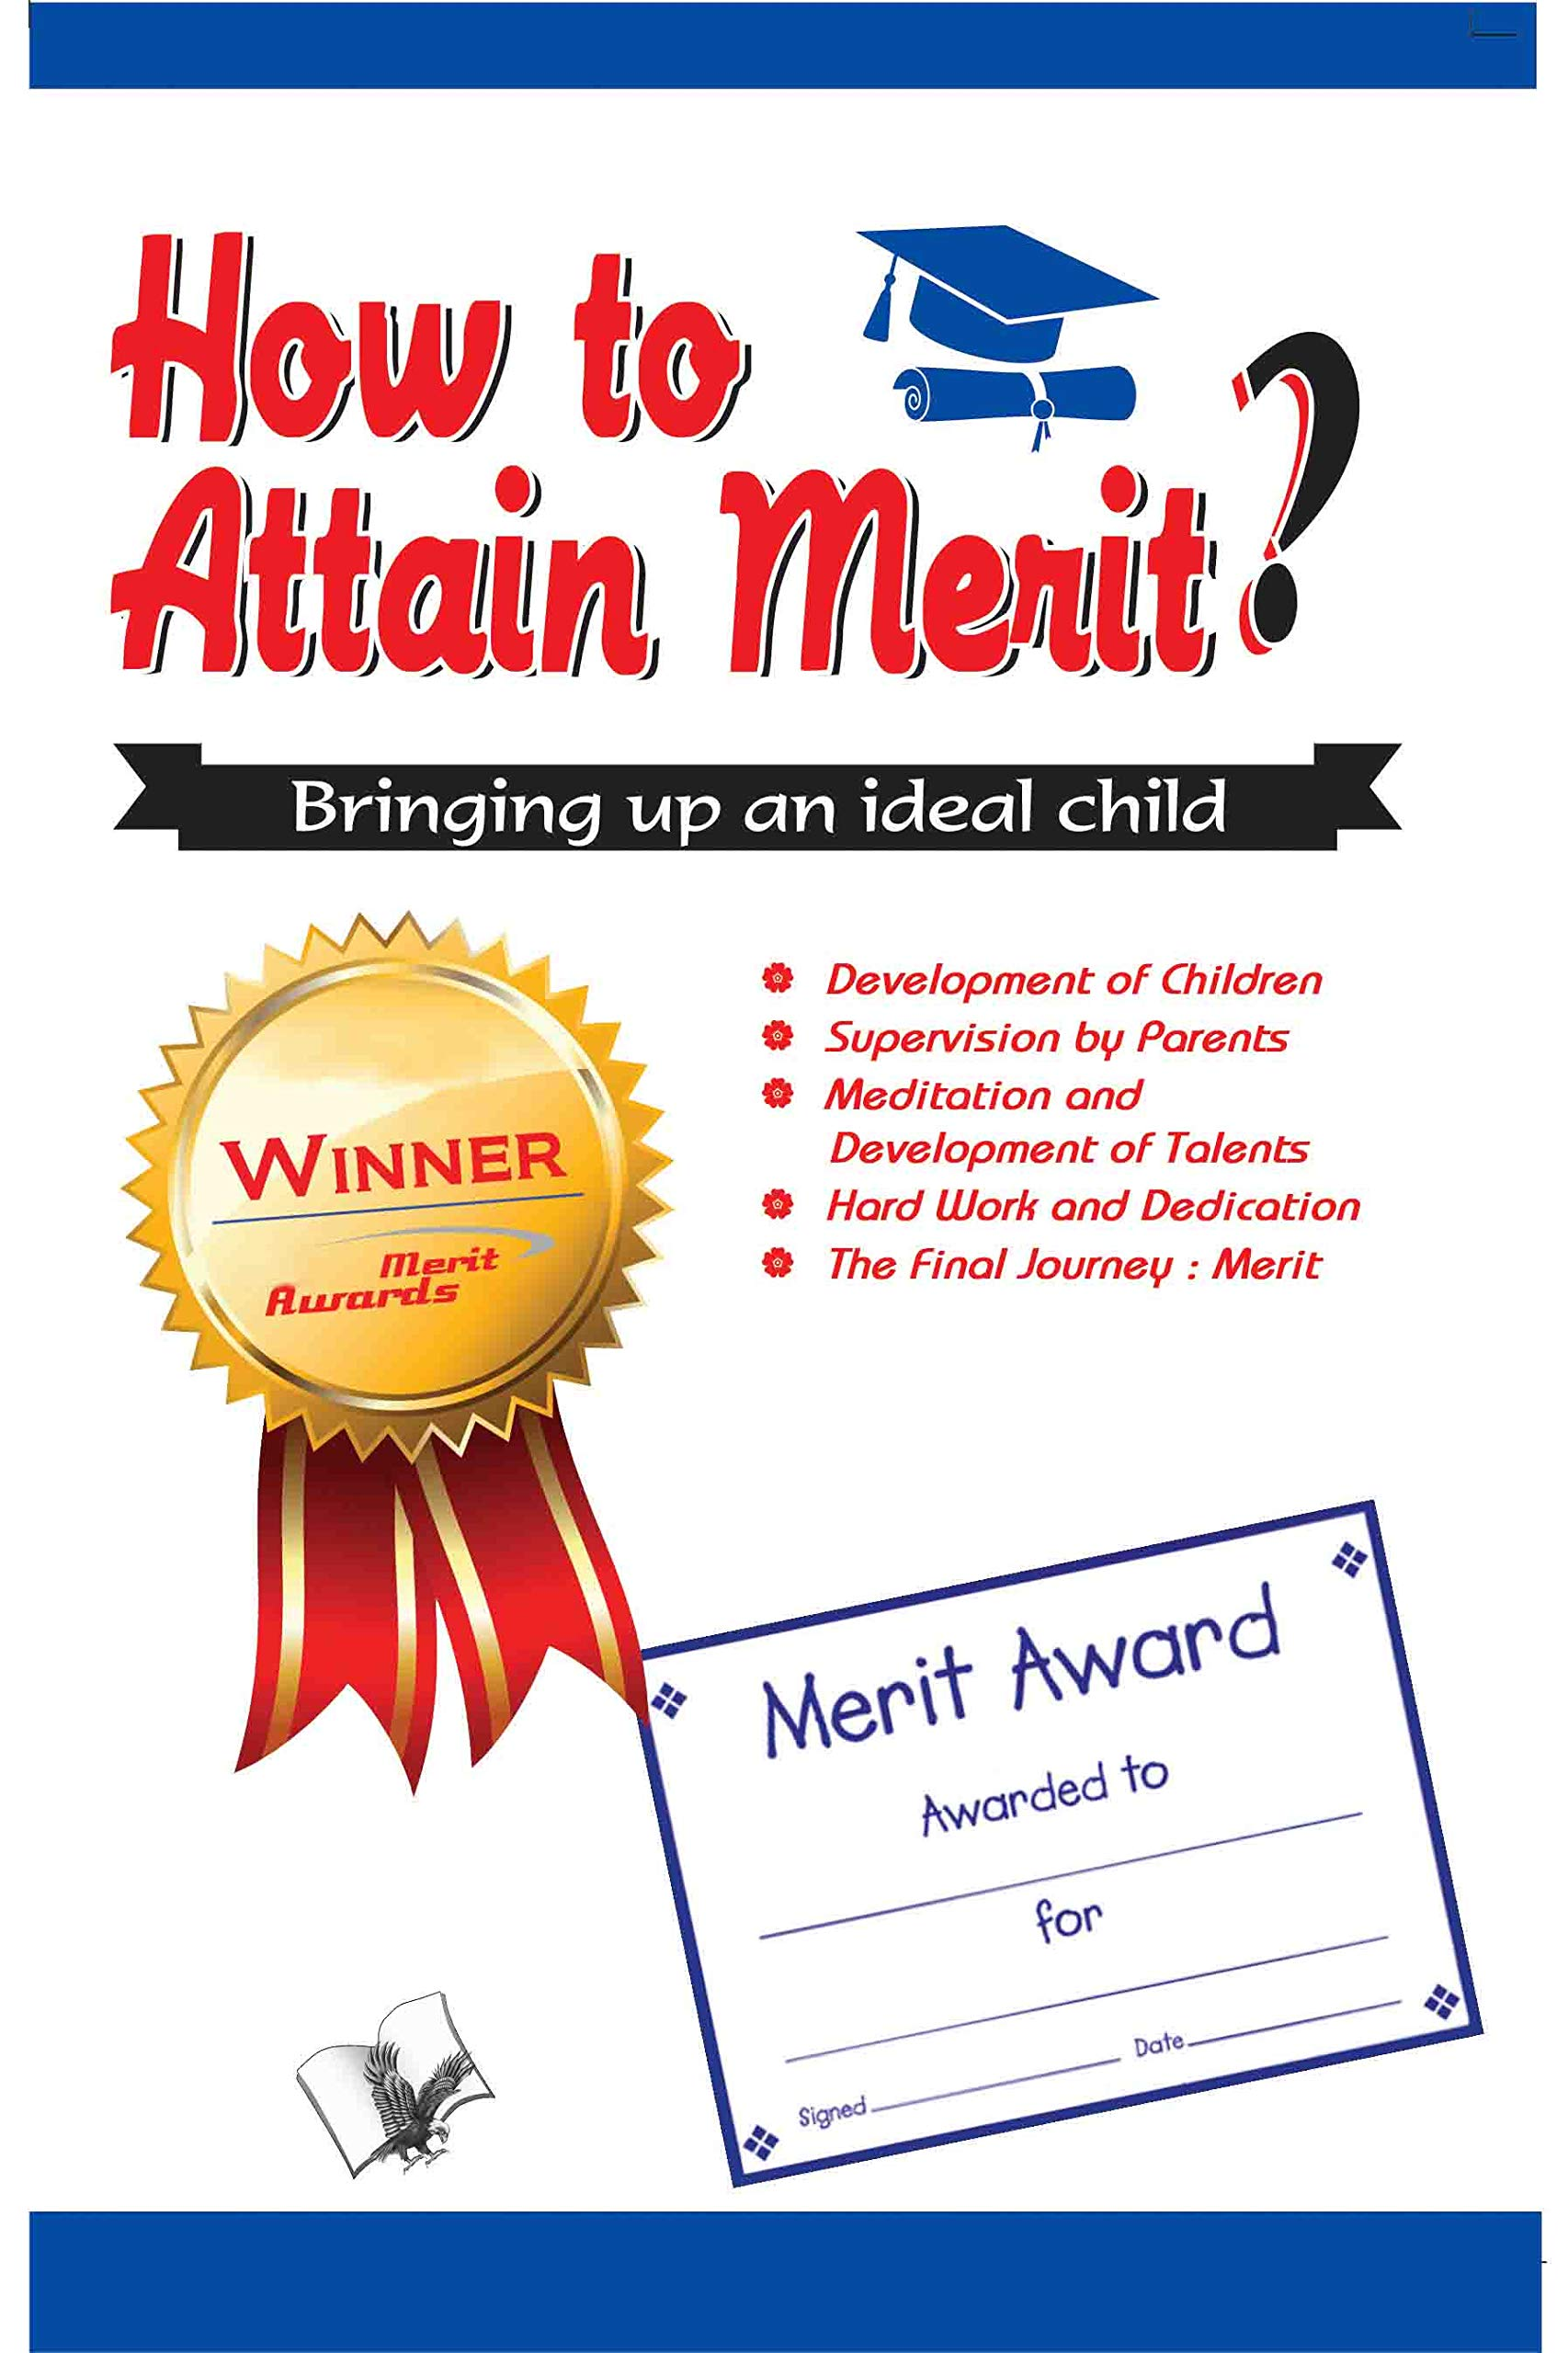 HOW TO ATTAIN MERIT: BRINGING UP AN IDEAL CHILD